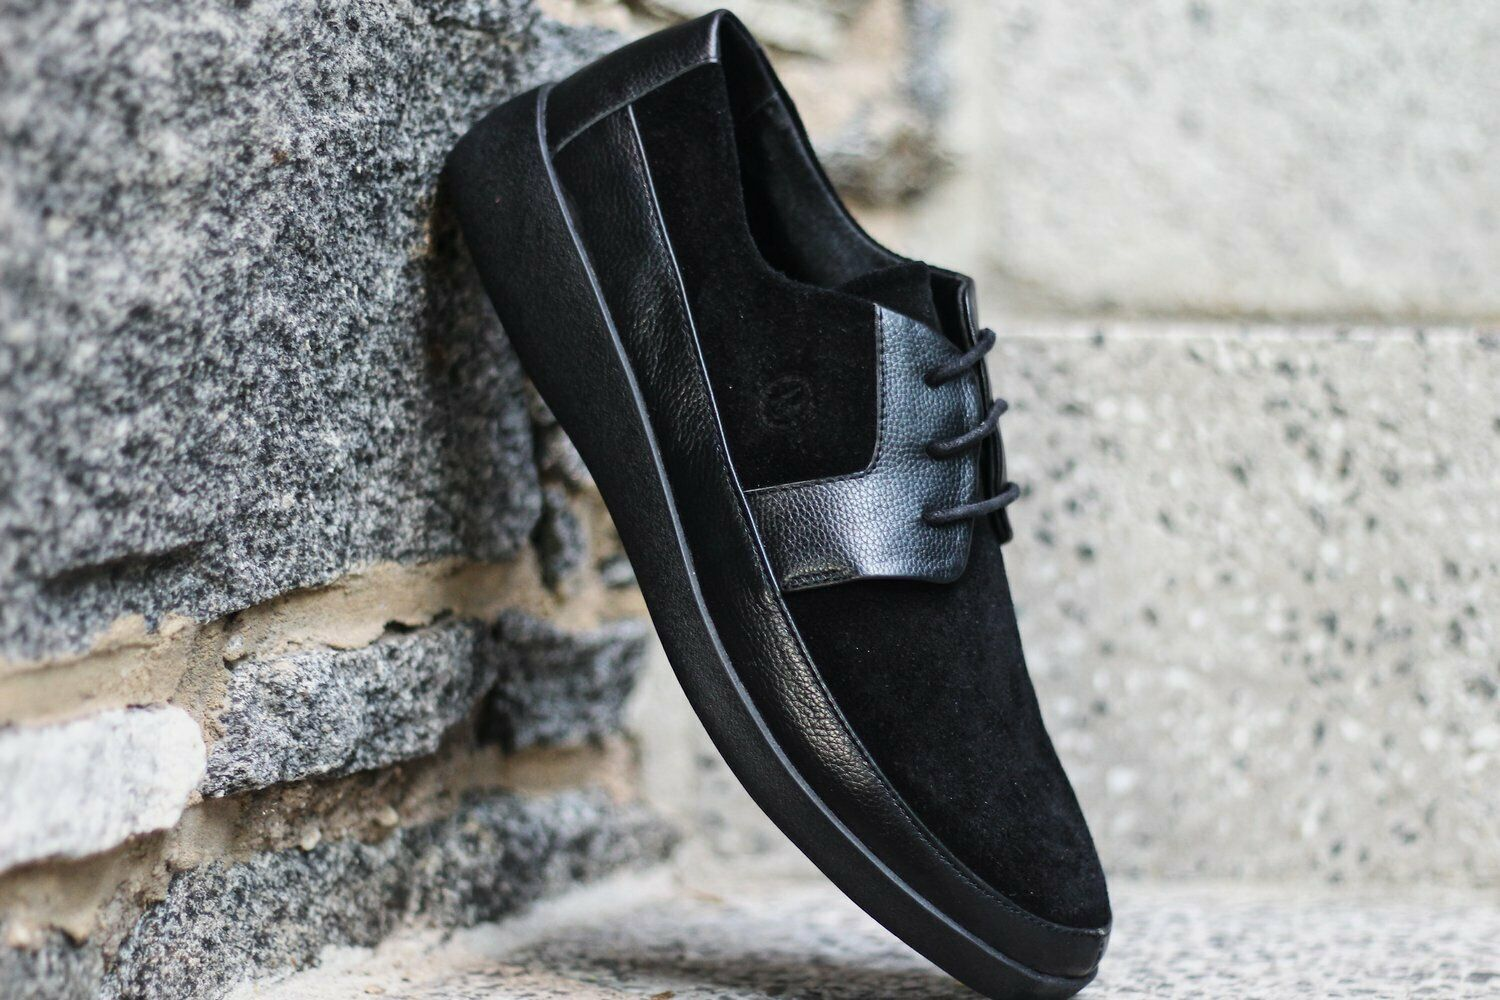 Johnny Famous Men's Black Suede Bally Style Casual Oxford shoes